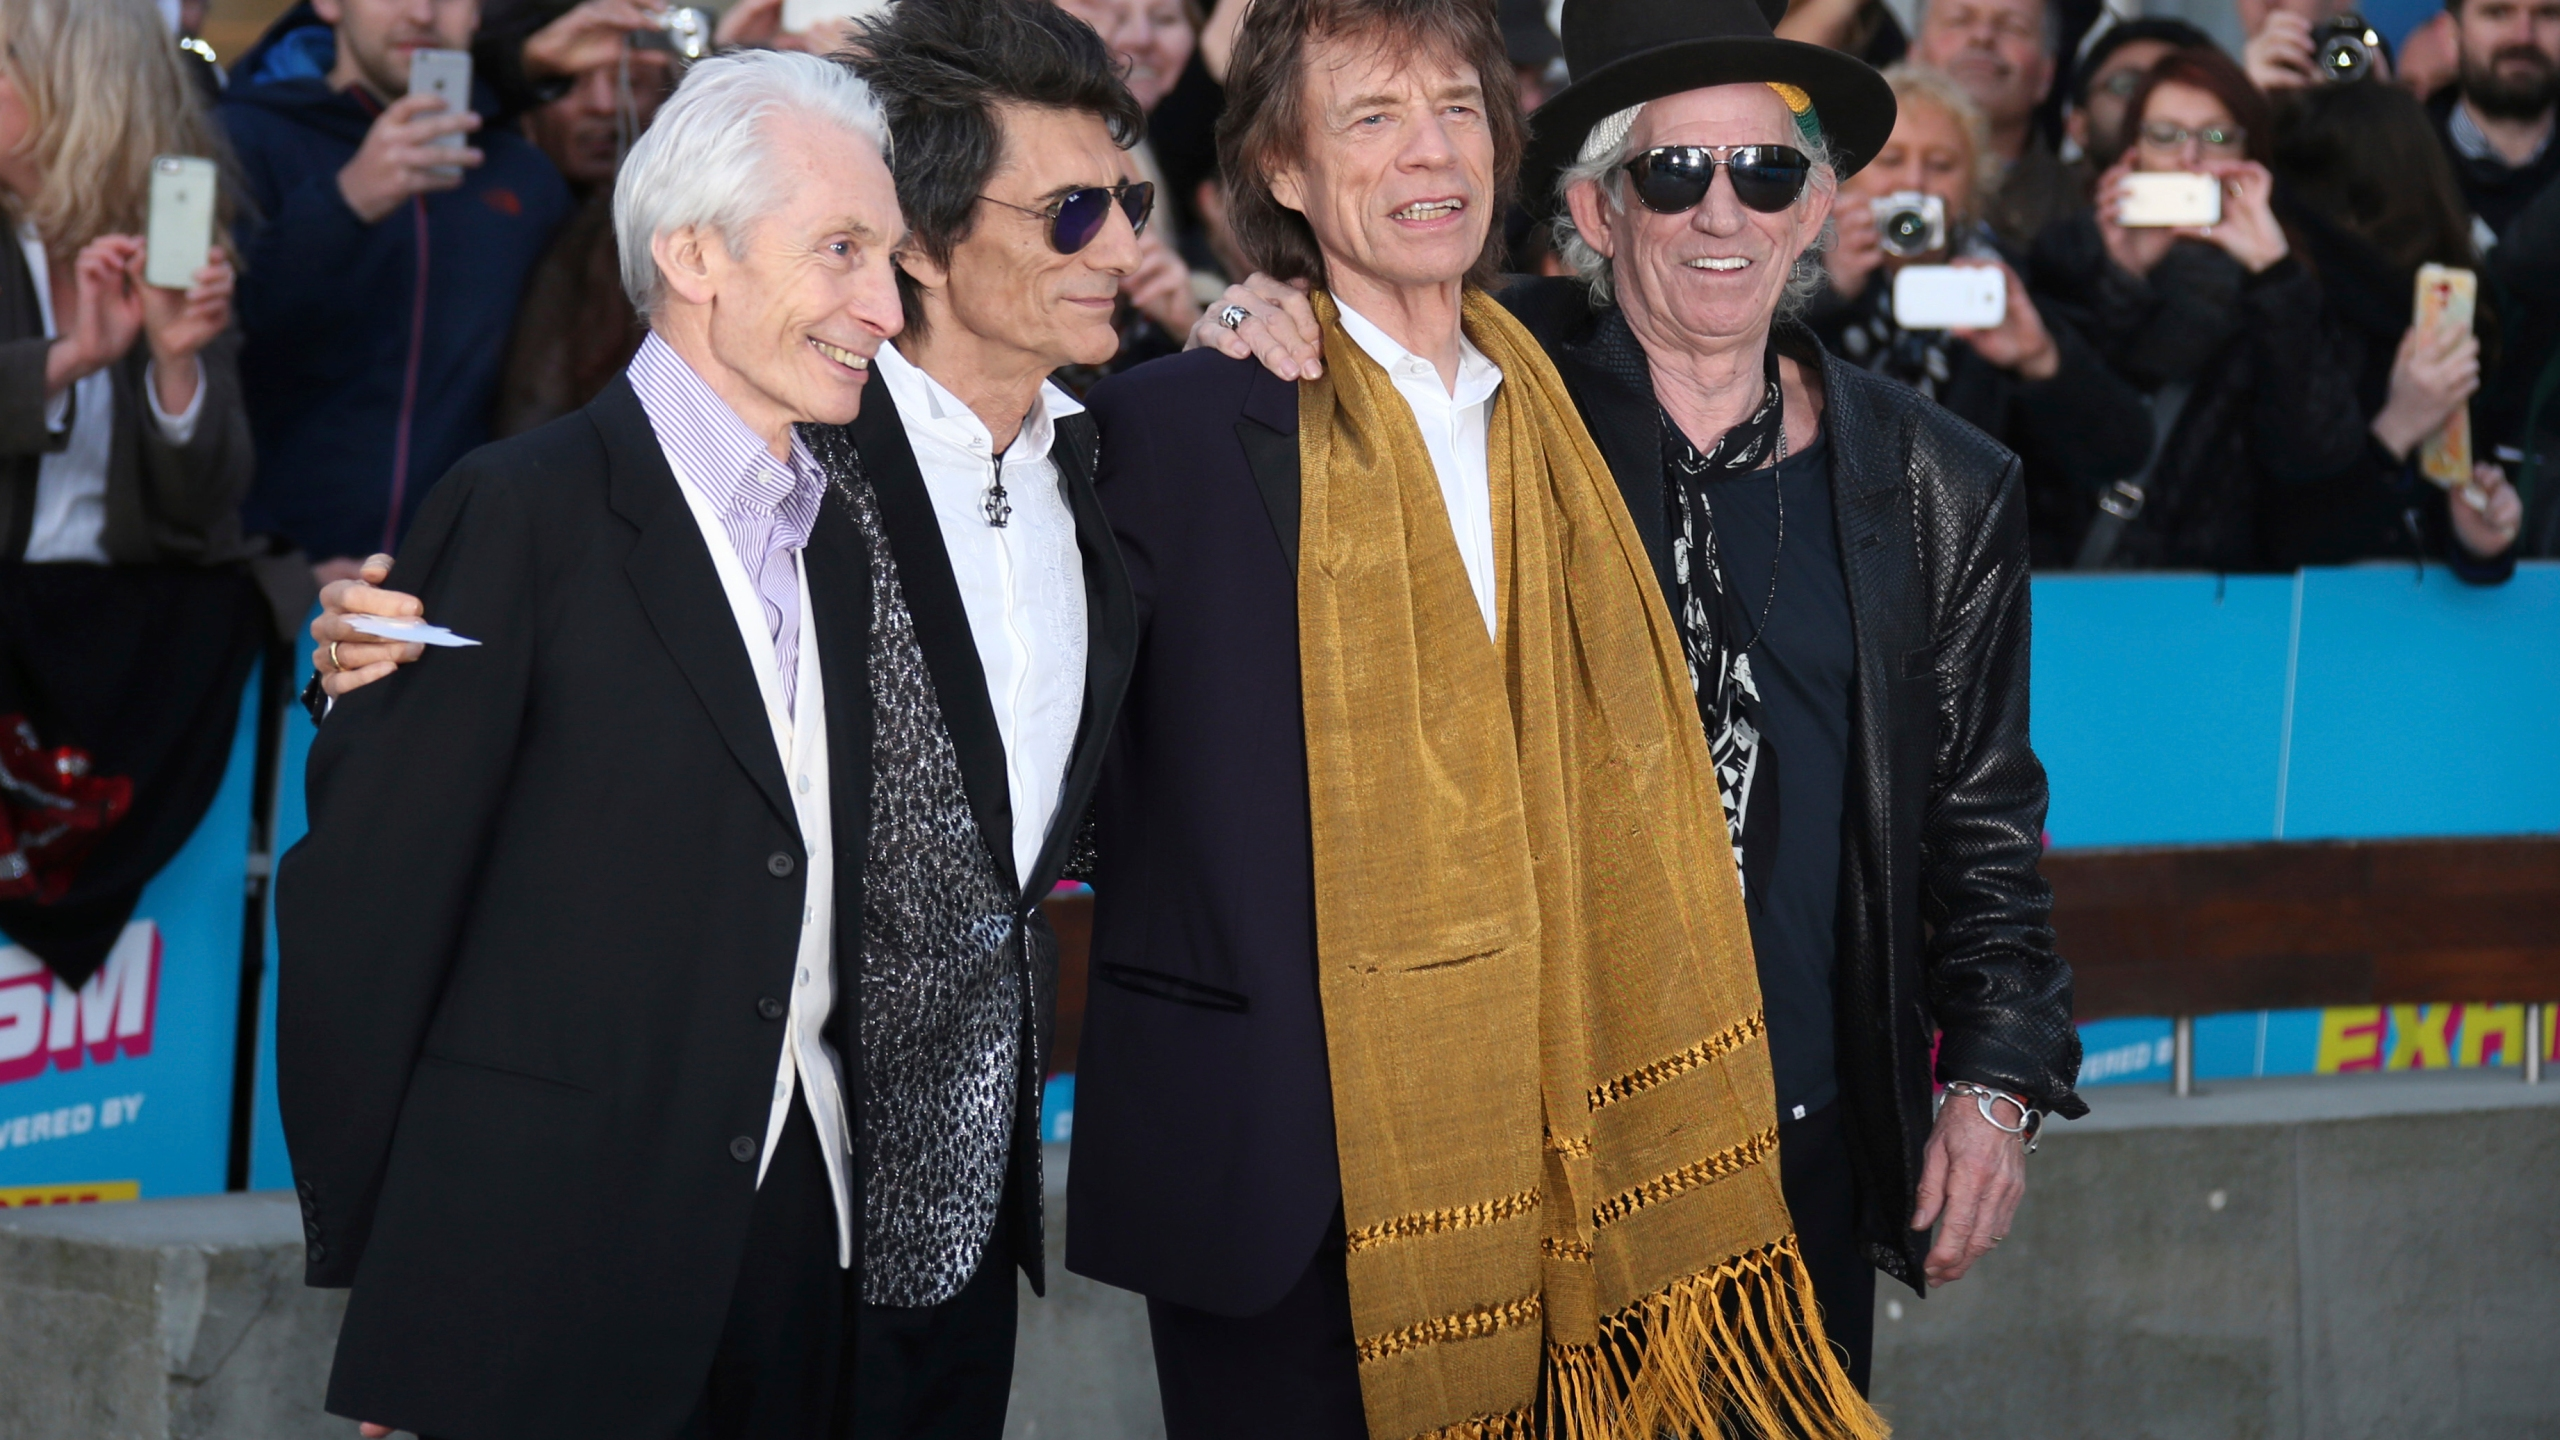 Charlie Watts, Ronnie Wood, Mick Jagger, Keith Richards